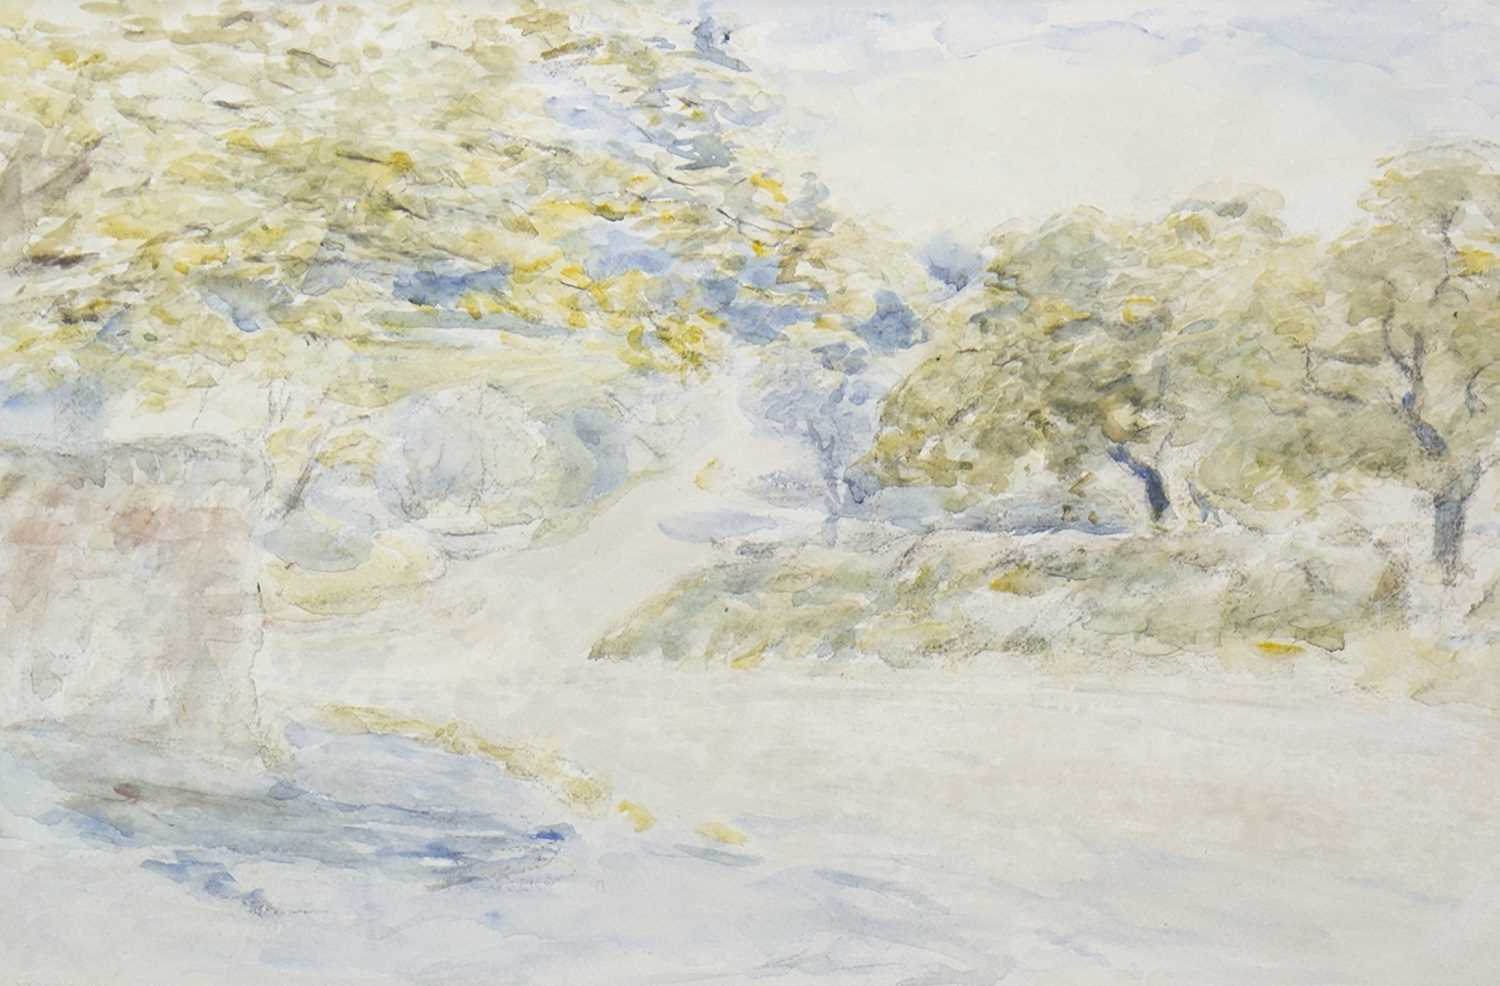 Lot 447-EARLY SUMMER, A WATERCOLOUR BY WILLIAM MCTAGGART